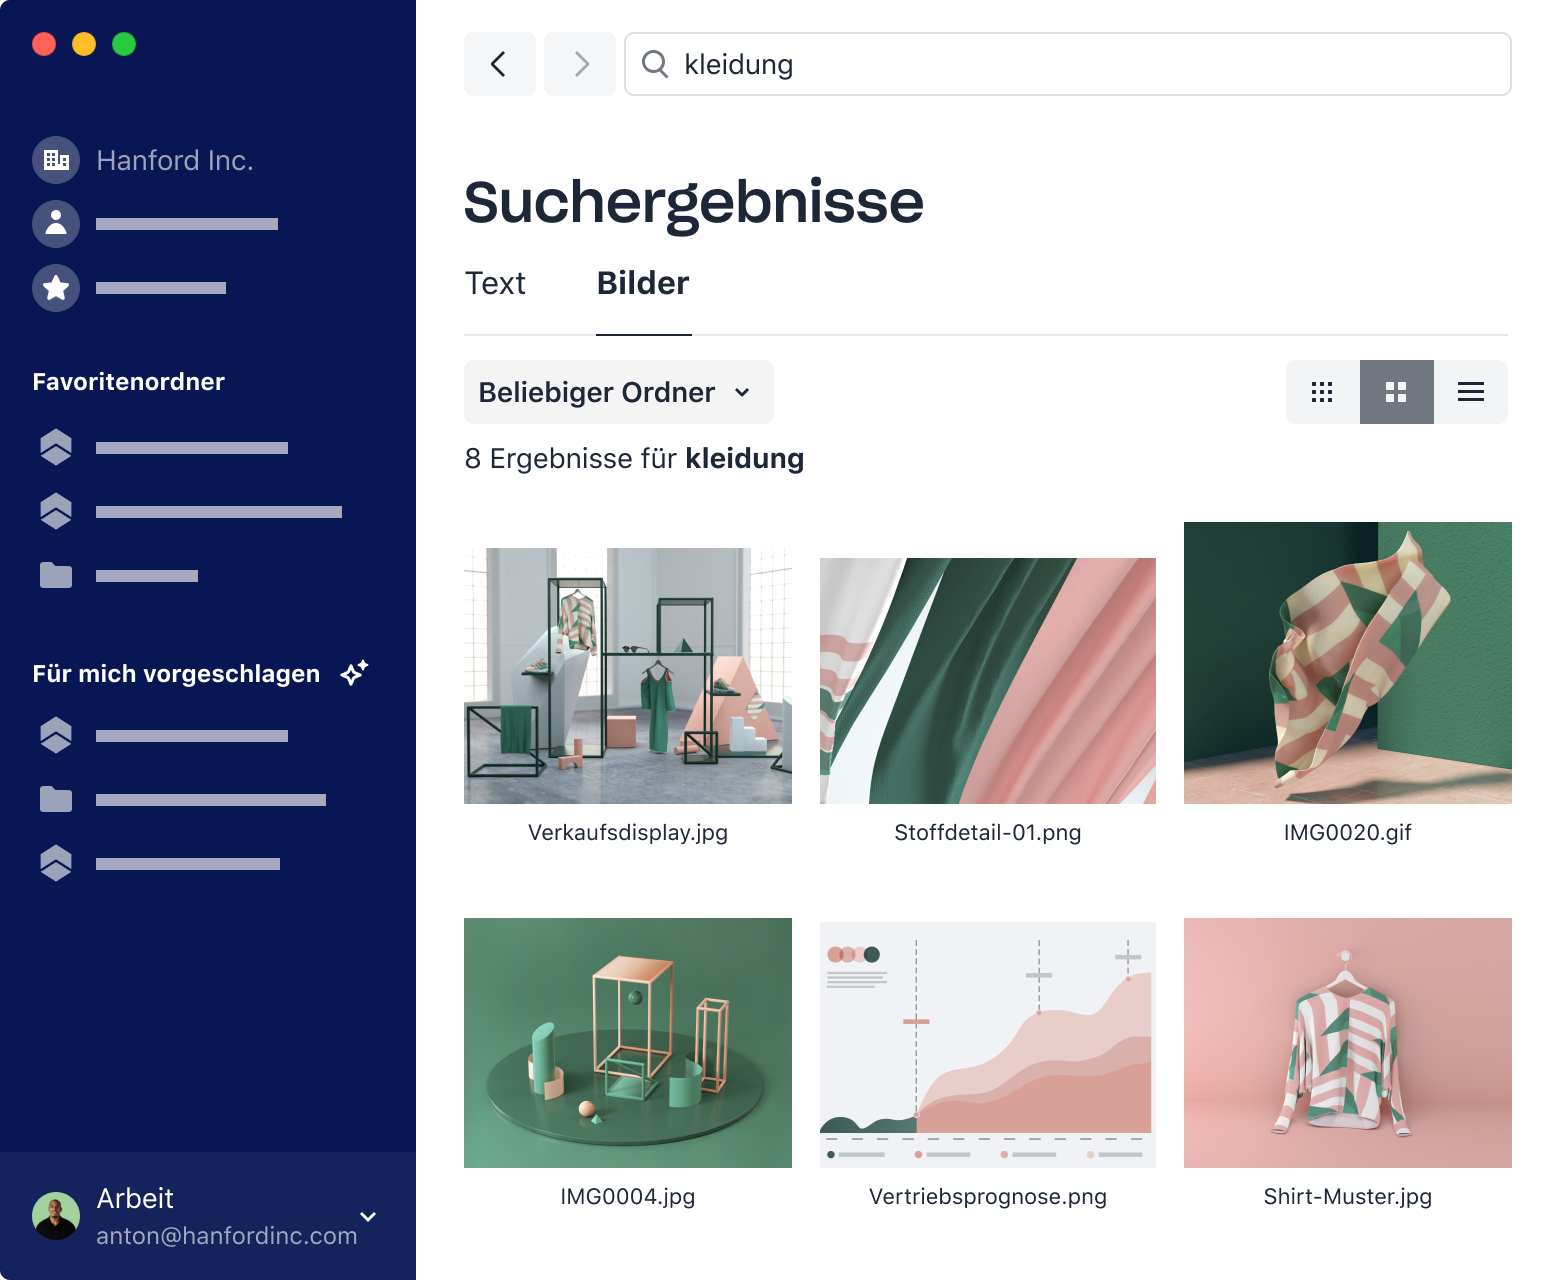 Examples of intelligent image search results for 'clothing' query in Dropbox.